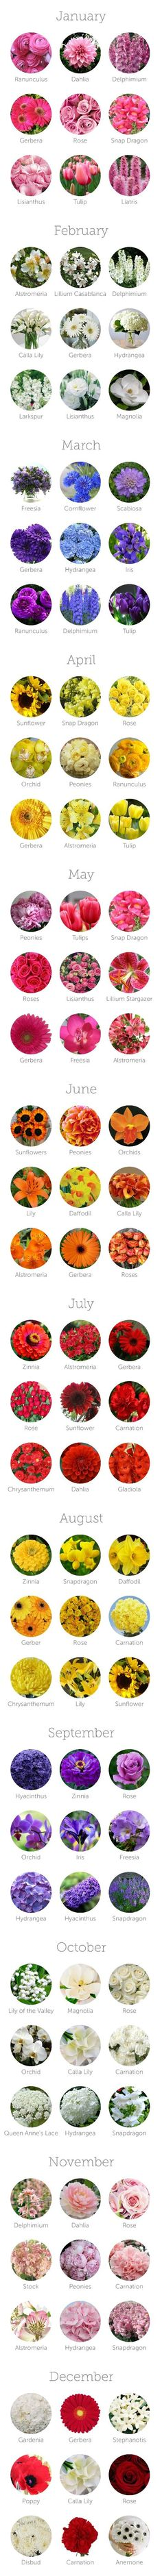 Flowers Available By Season / The Budget Savvy Bride. Not getting married, just love flowers! :)